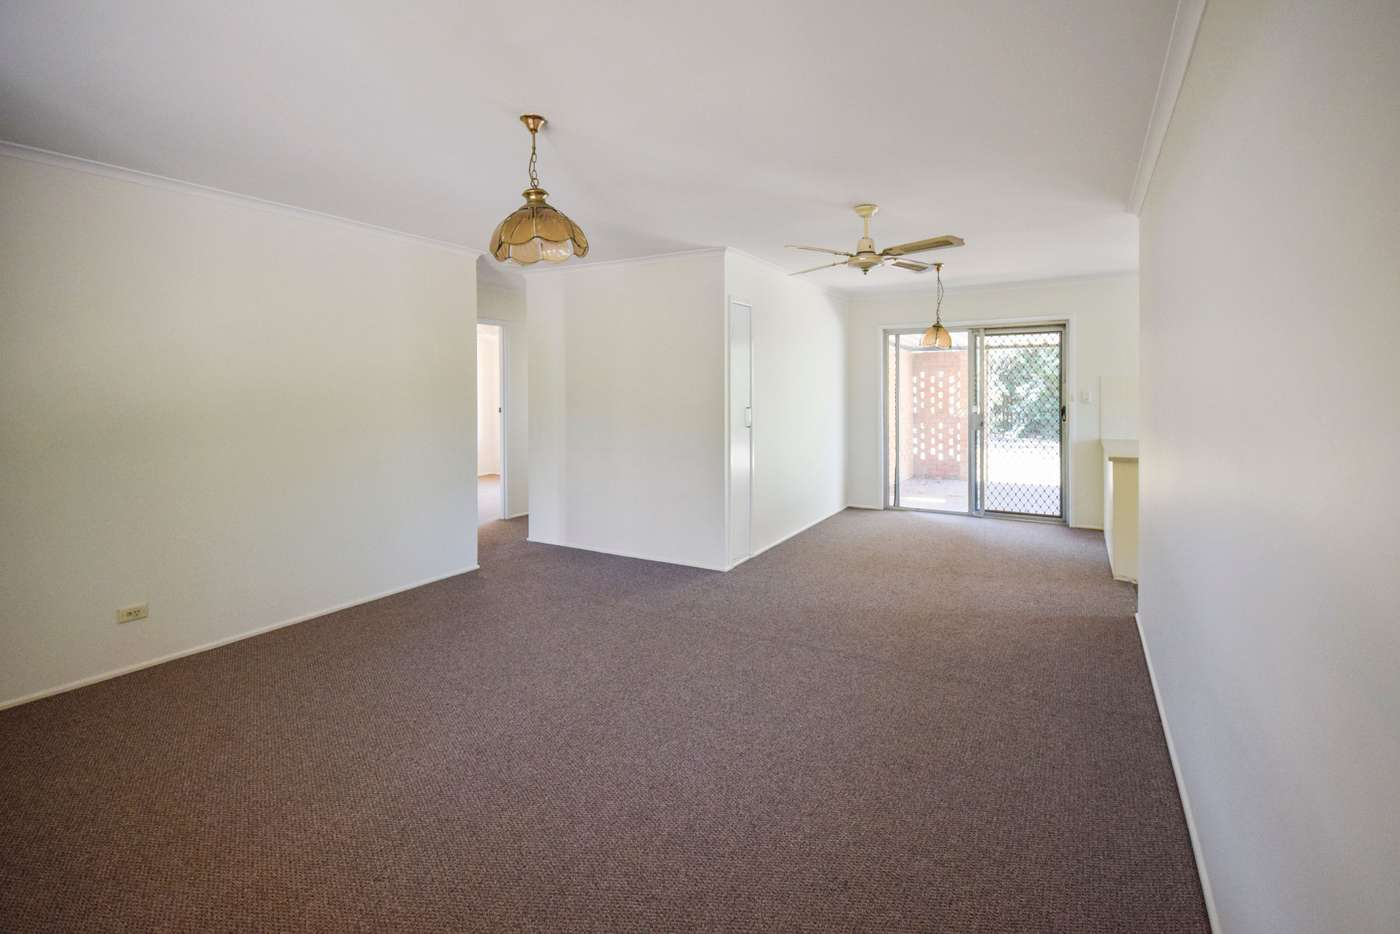 Sixth view of Homely house listing, 27 Bowline Street, Jamboree Heights QLD 4074